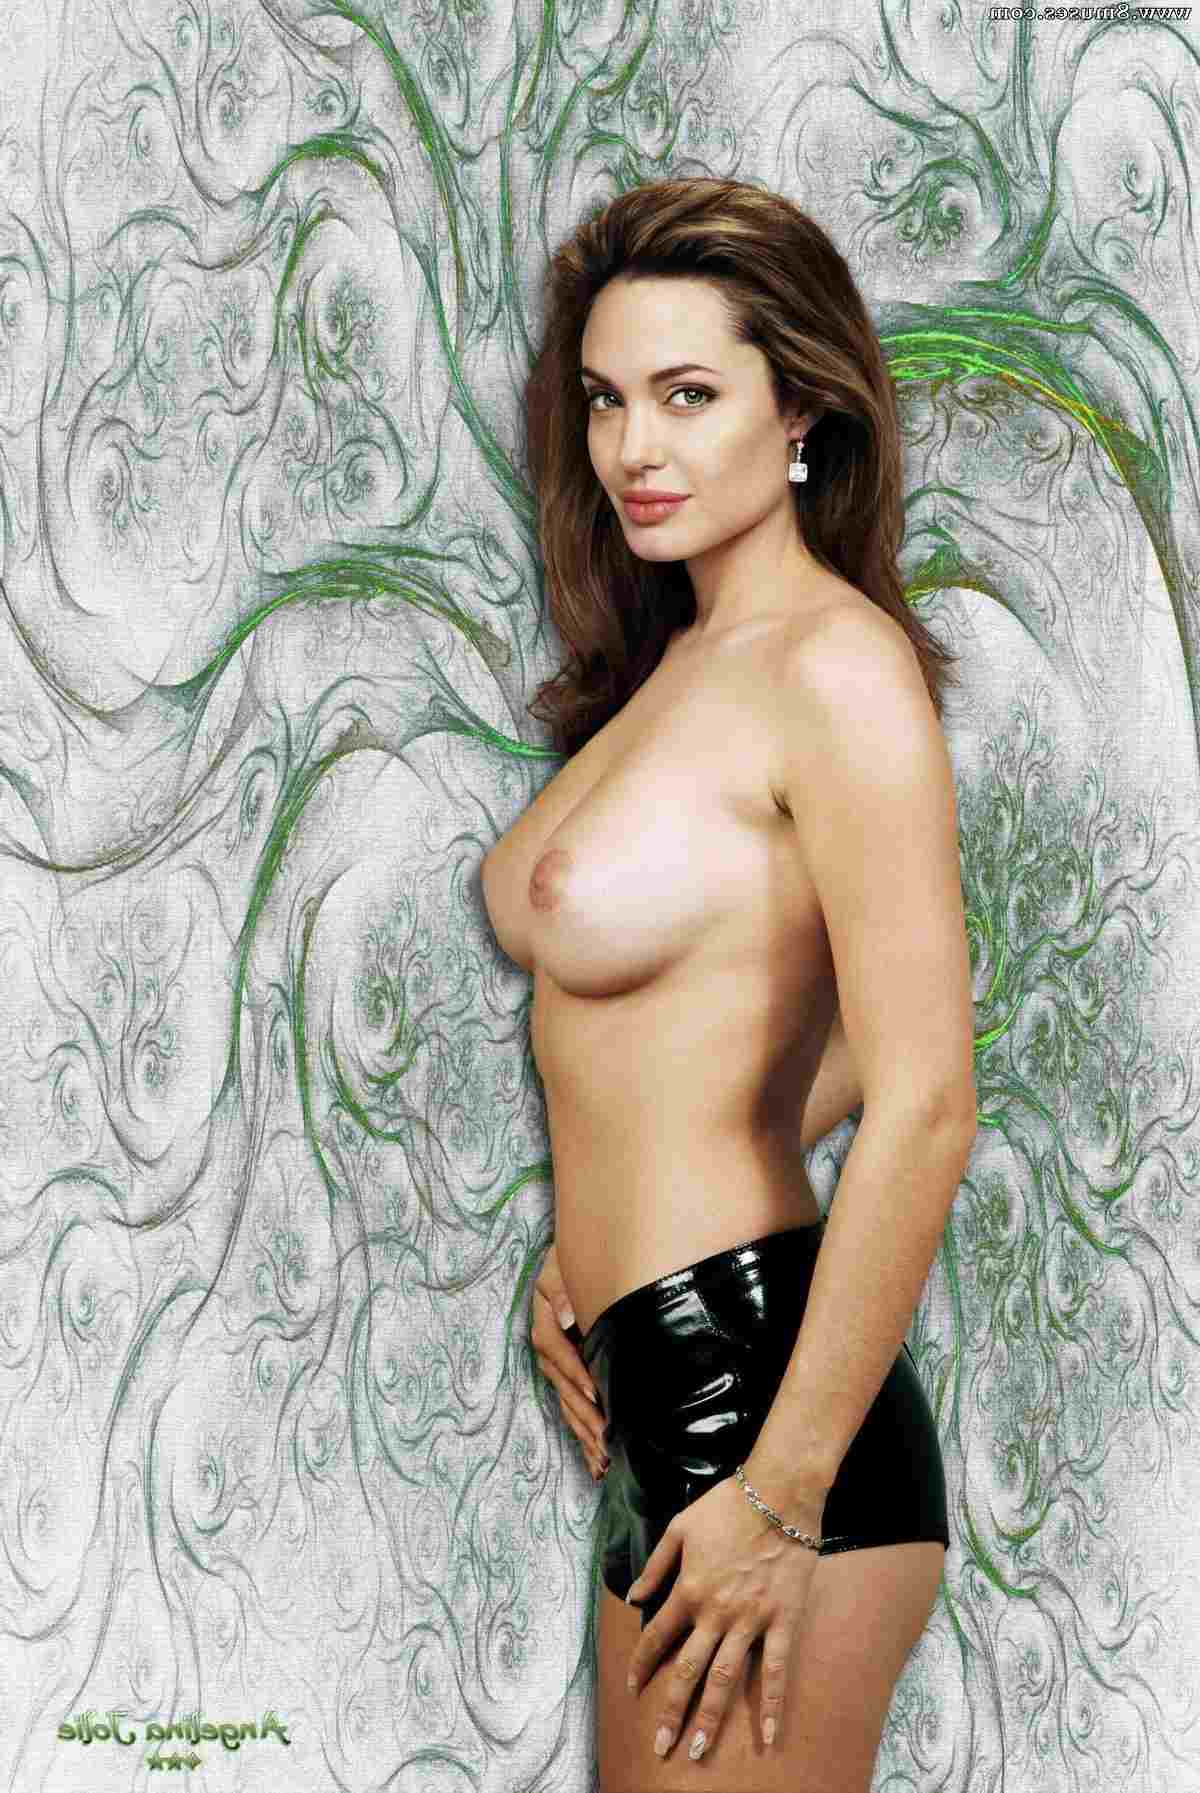 Fake-Celebrities-Sex-Pictures/Angelina-Jolie Angelina_Jolie__8muses_-_Sex_and_Porn_Comics_510.jpg